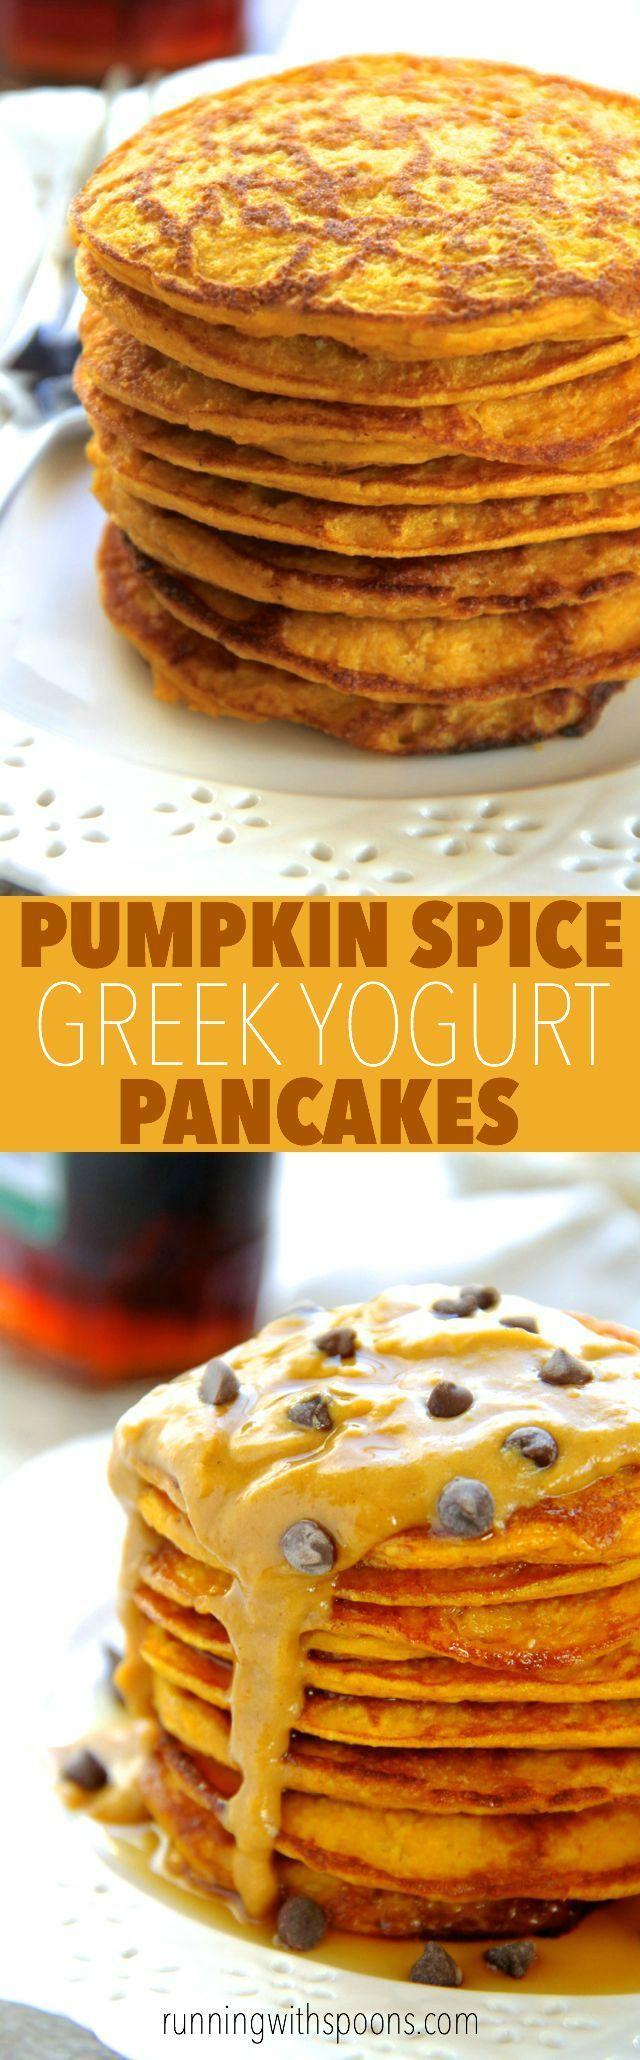 Pumpkin Spice Greek Yogurt Pancakes -- light, fluffy, and made in the blender, enjoy the ENTIRE recipe for under 300 calories with 20g of protein! || runningwithspoons.com #pumpkin #pancakes #breakfast